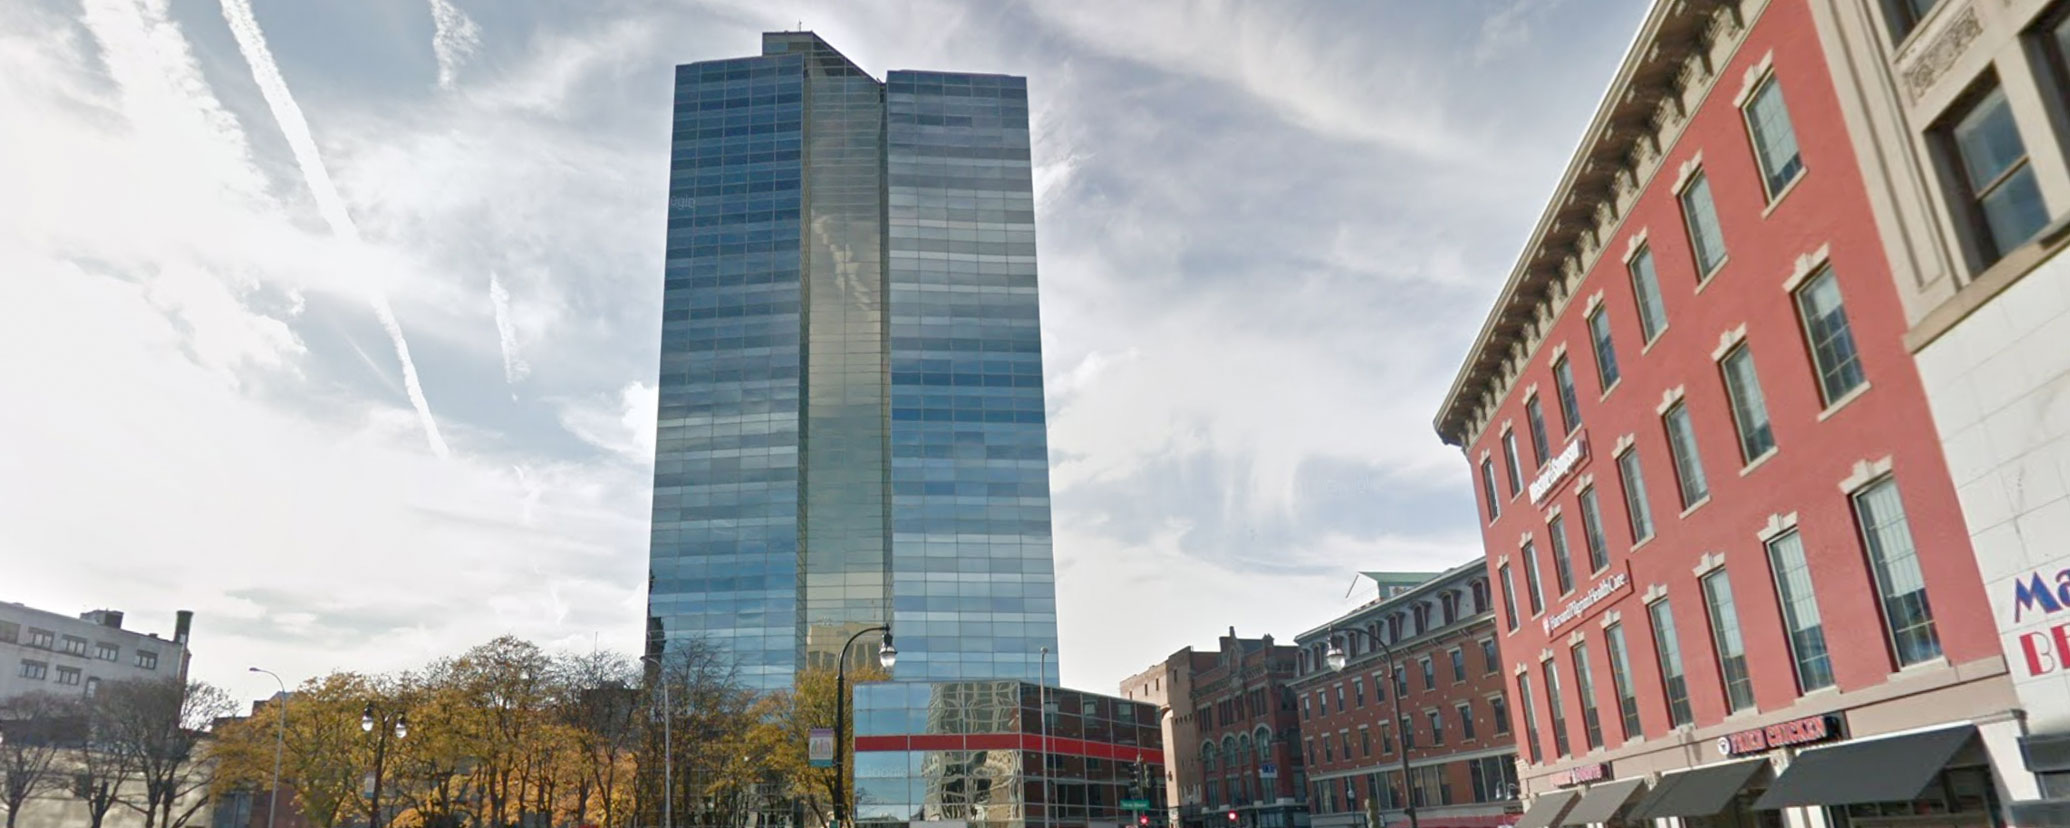 Caddell Construction Project - Bank & Office Building Worcester, MA